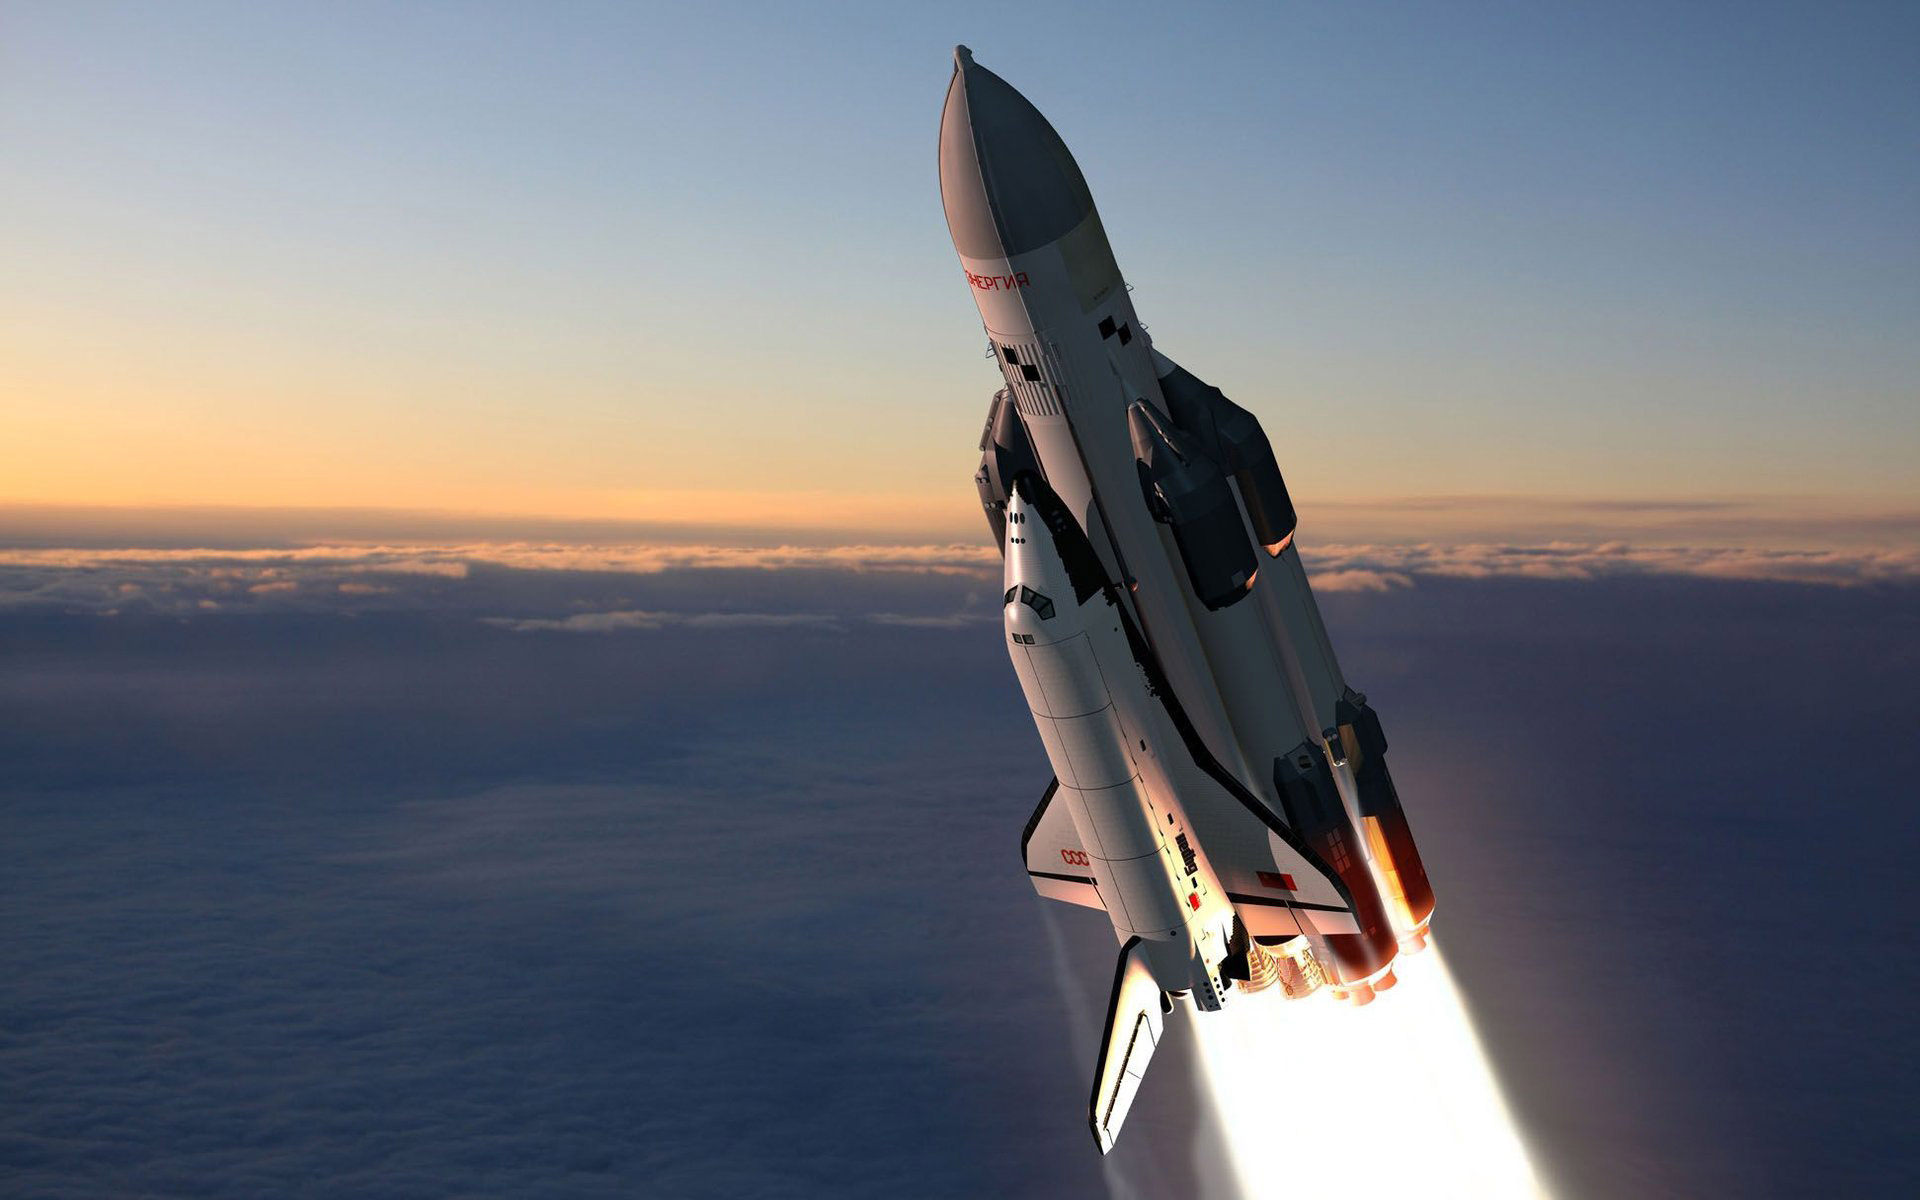 Space shuttle hd